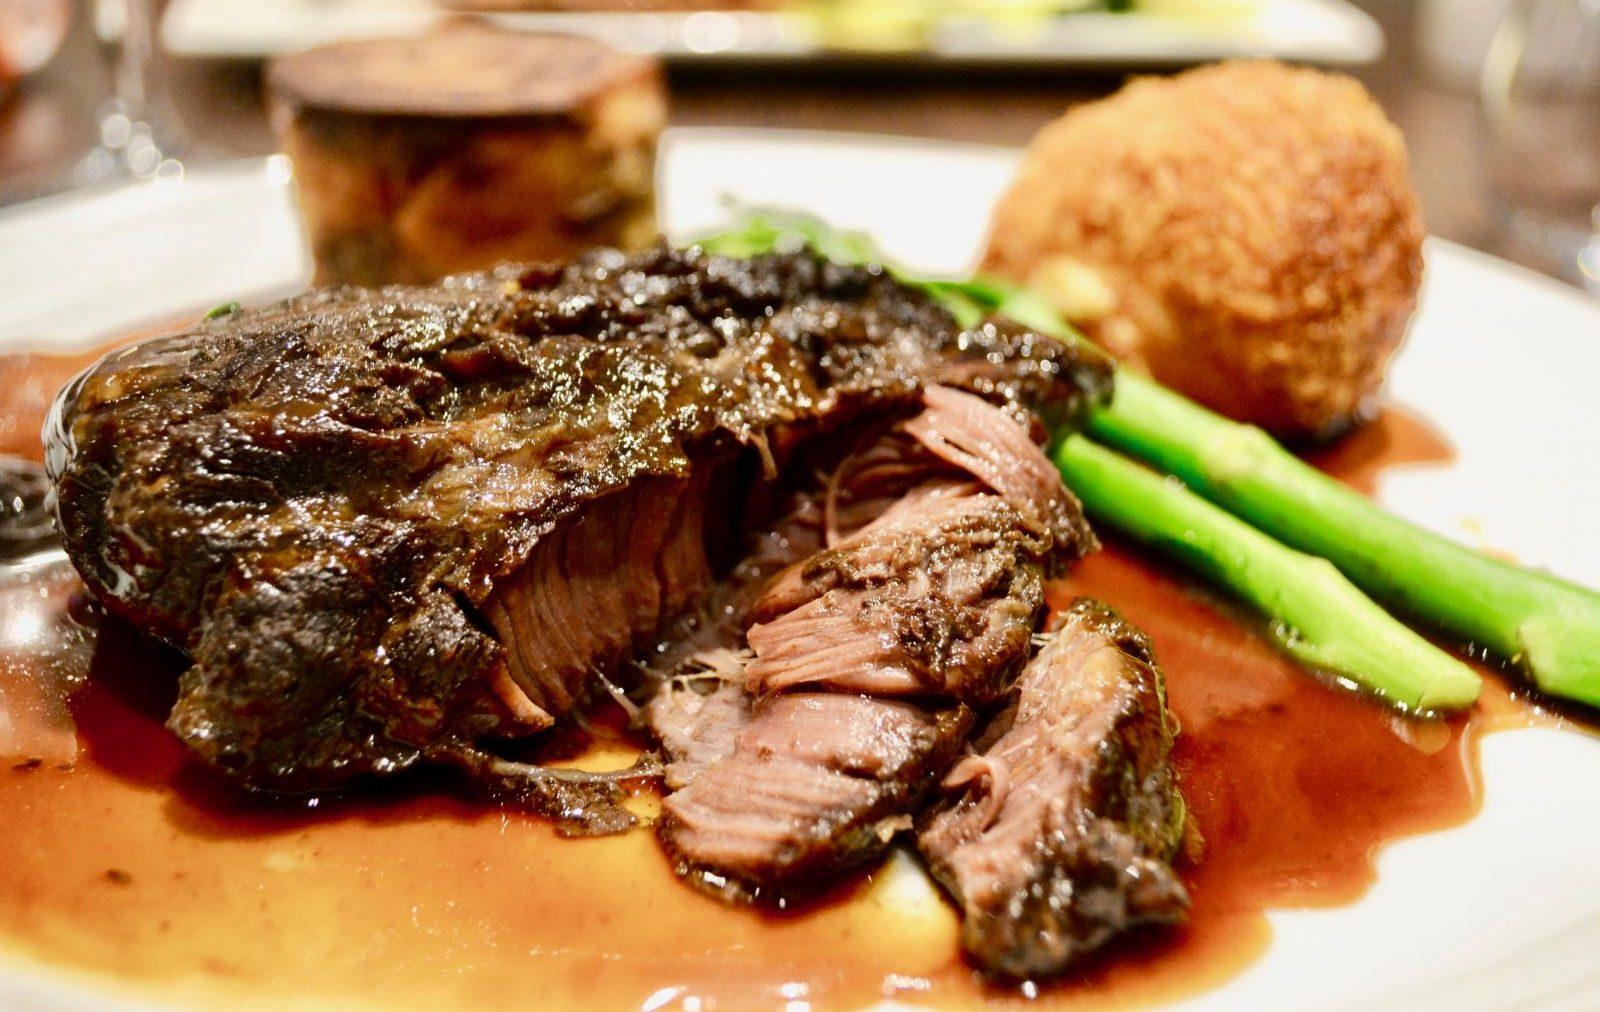 Melt-In-Your-Mouth Beef Cheek & more at The Lincoln Grille